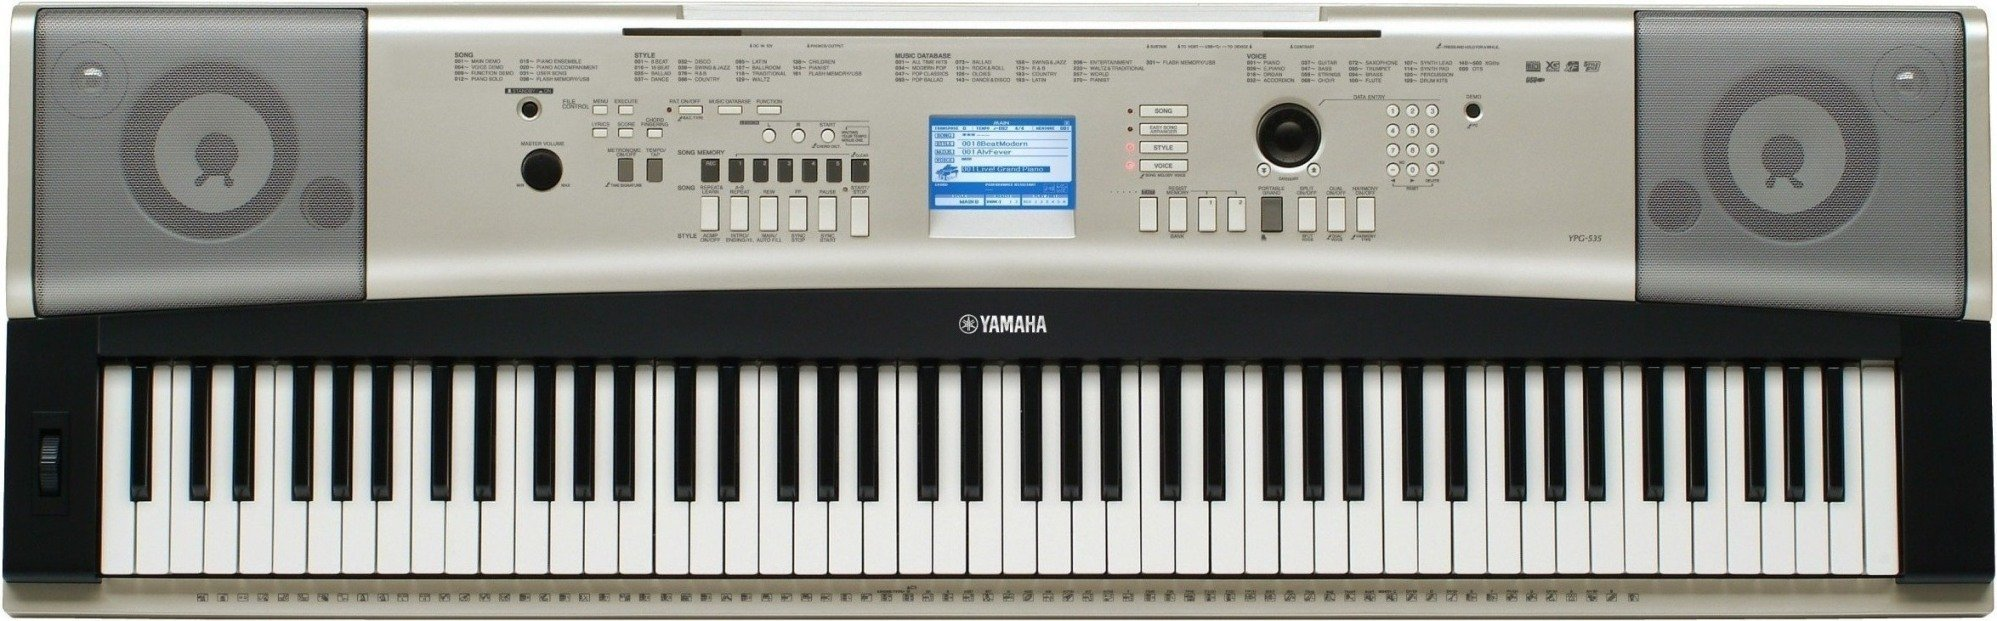 Ypg 535 overview yamaha canada english for Yamaha piano keyboard models